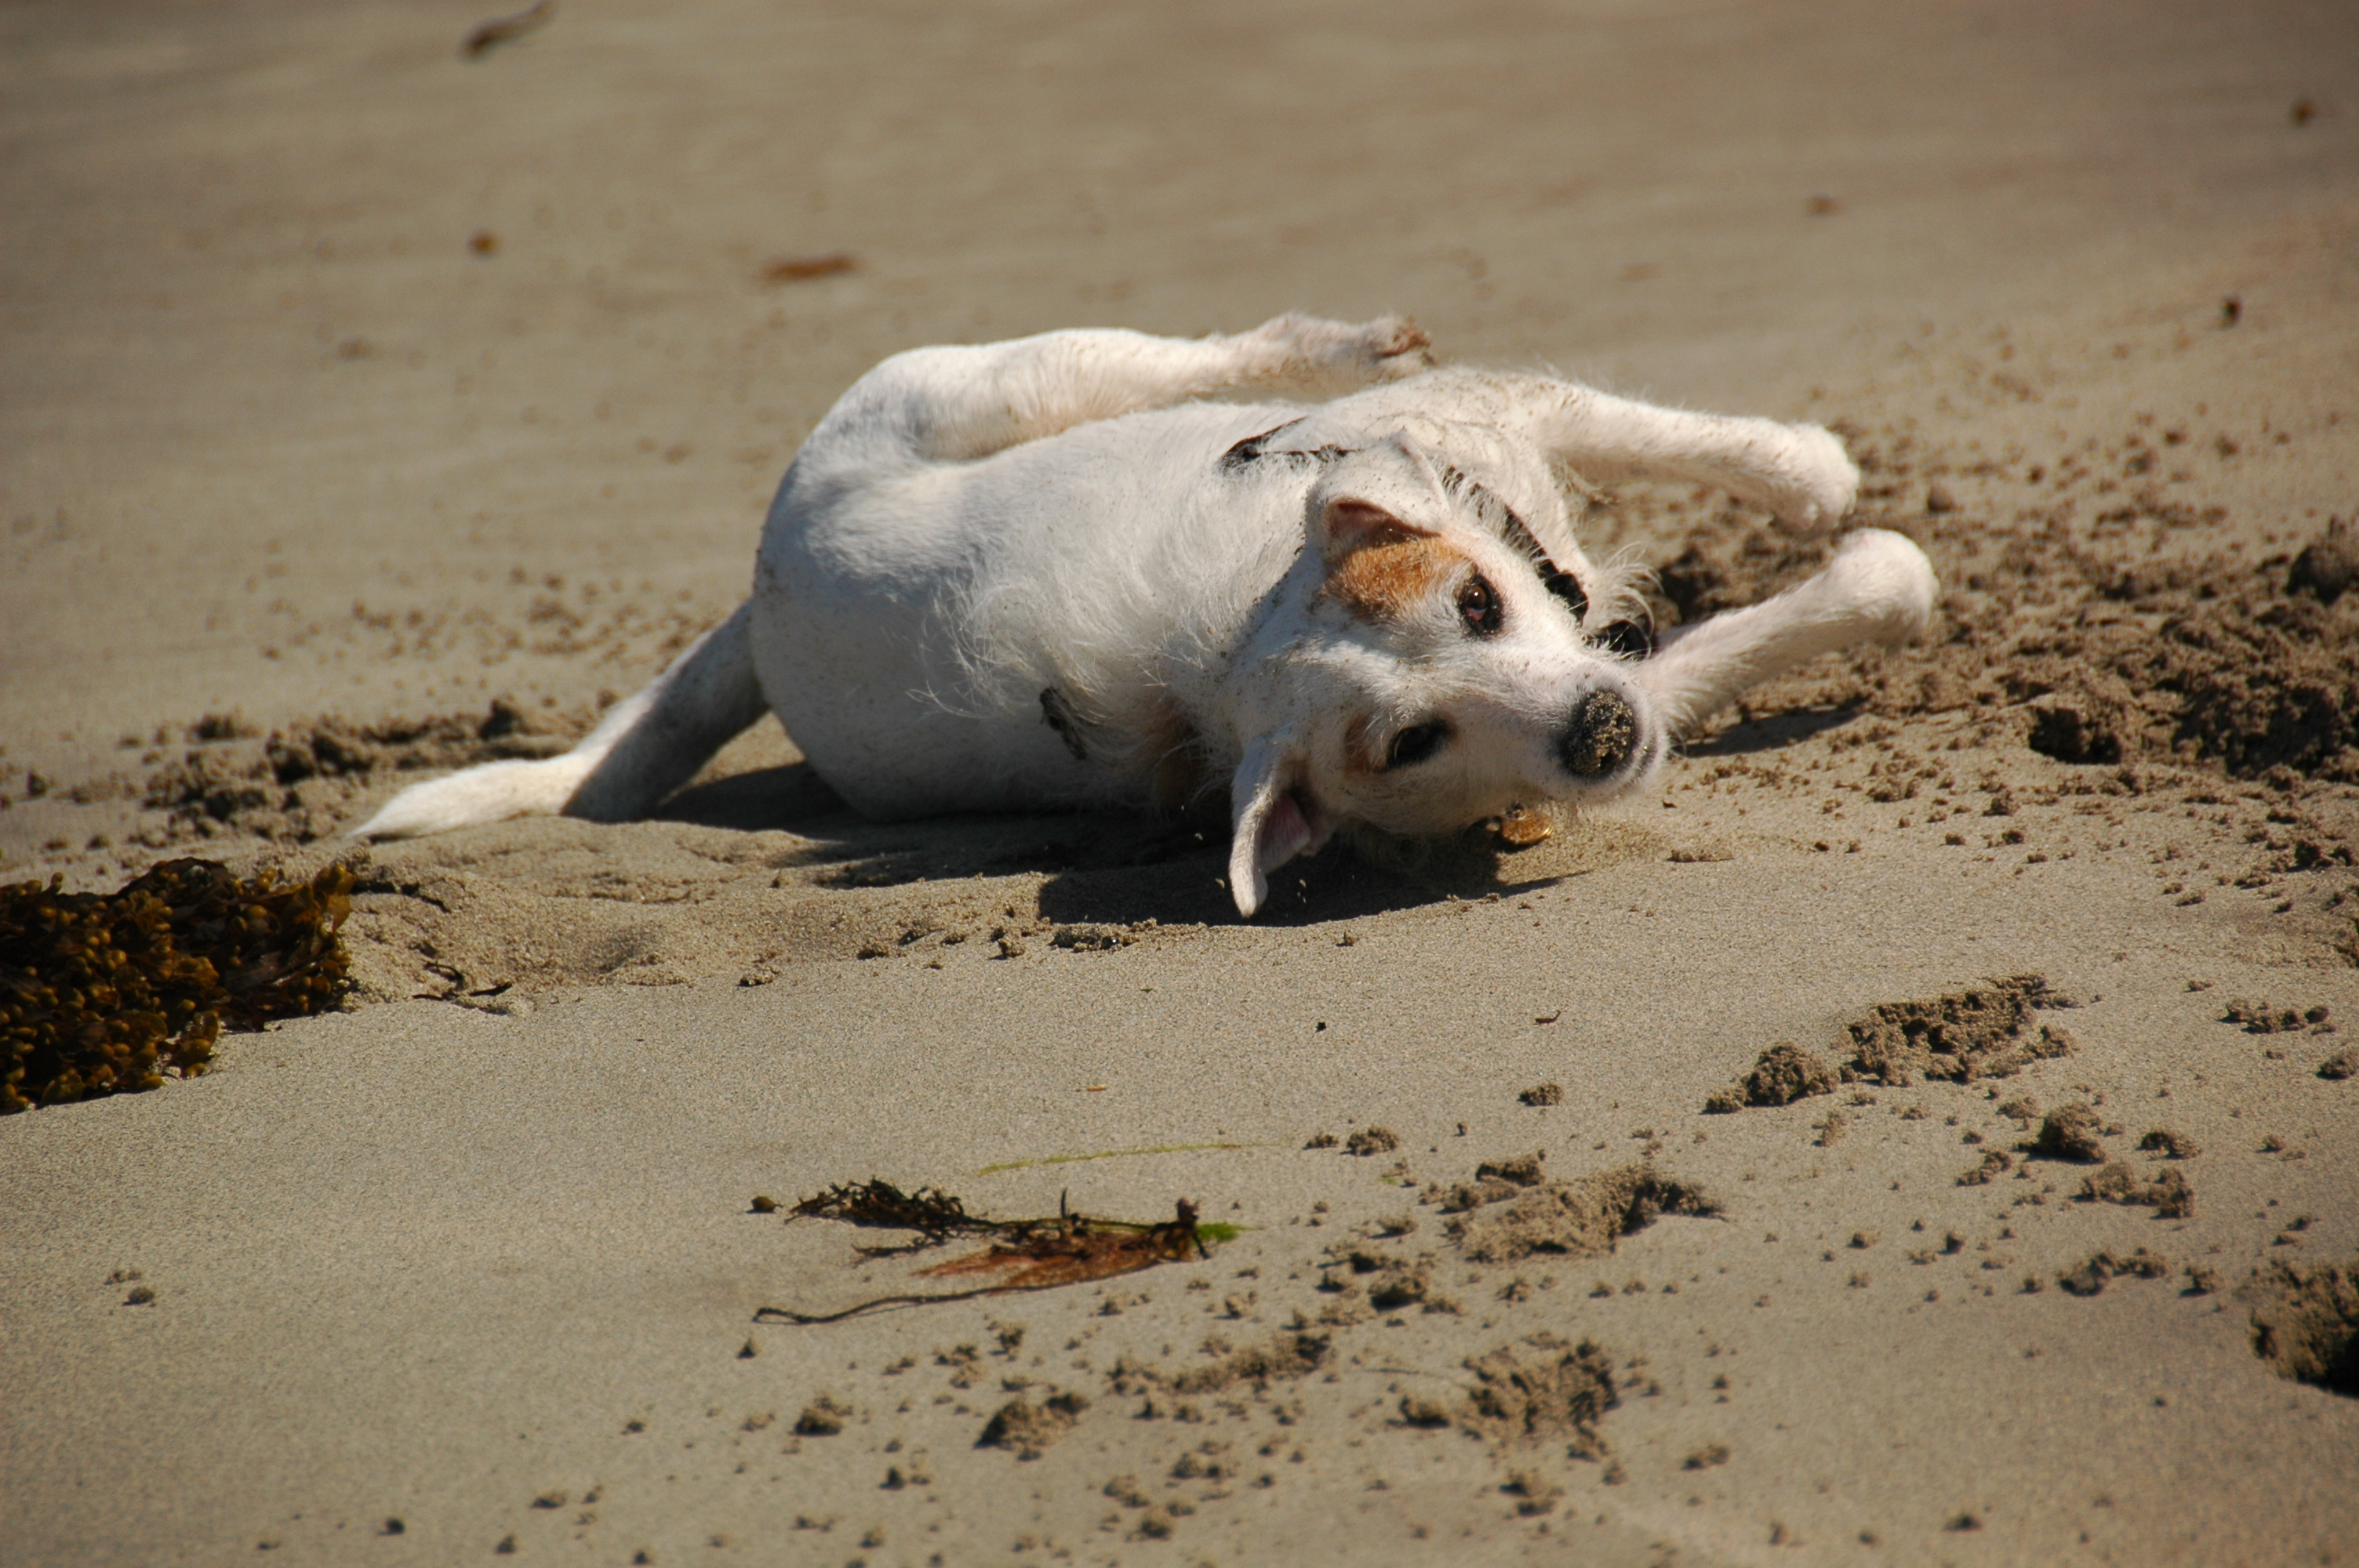 Dog rolling in the sand